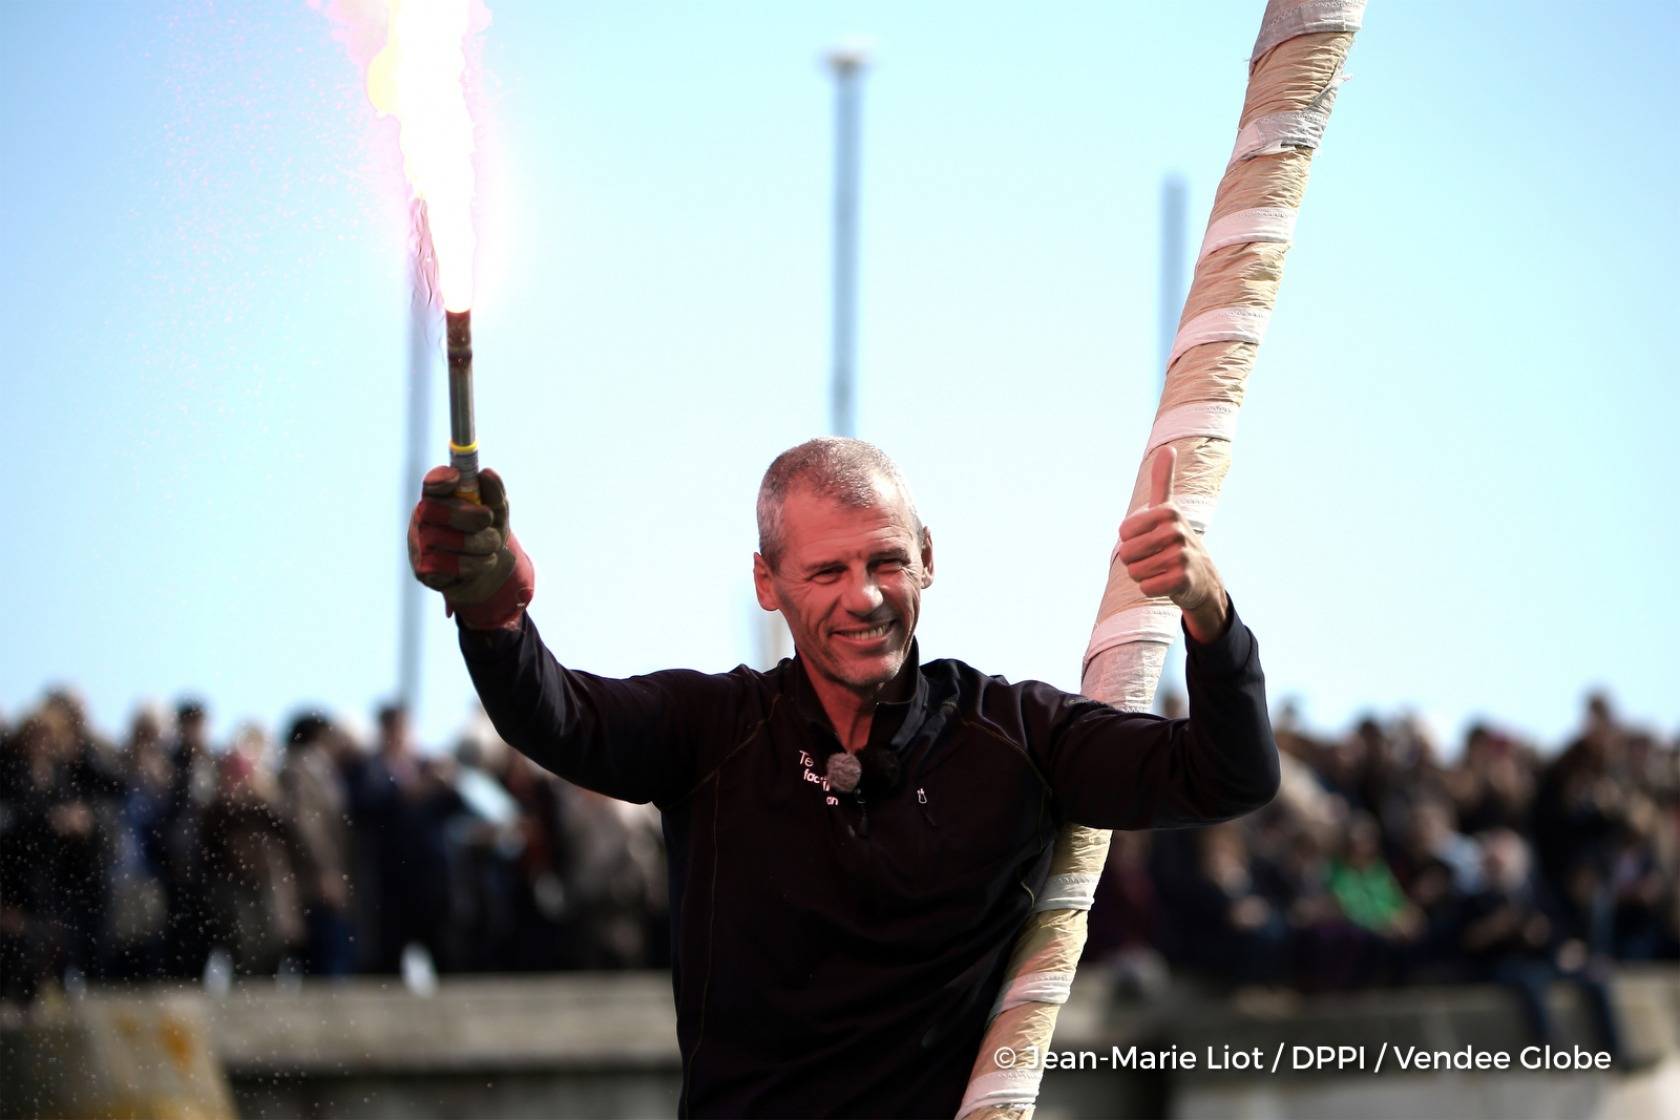 Celebration with flares in the channel during finish arrival of Sebastien Destremau (FRA), skipper Technofirst Face Ocean,18th of the sailing circumnavigation solo race Vendee Globe, in Les Sables d'Olonne, France, on March 11th, 2017 - Photo Jean-Marie Liot / DPPI / Vendee GlobeArrivée de Sebastien Destremau (FRA), skipper Technofirst Face Ocean, 18ème du Vendee Globe, aux Sables d'Olonne, Fran